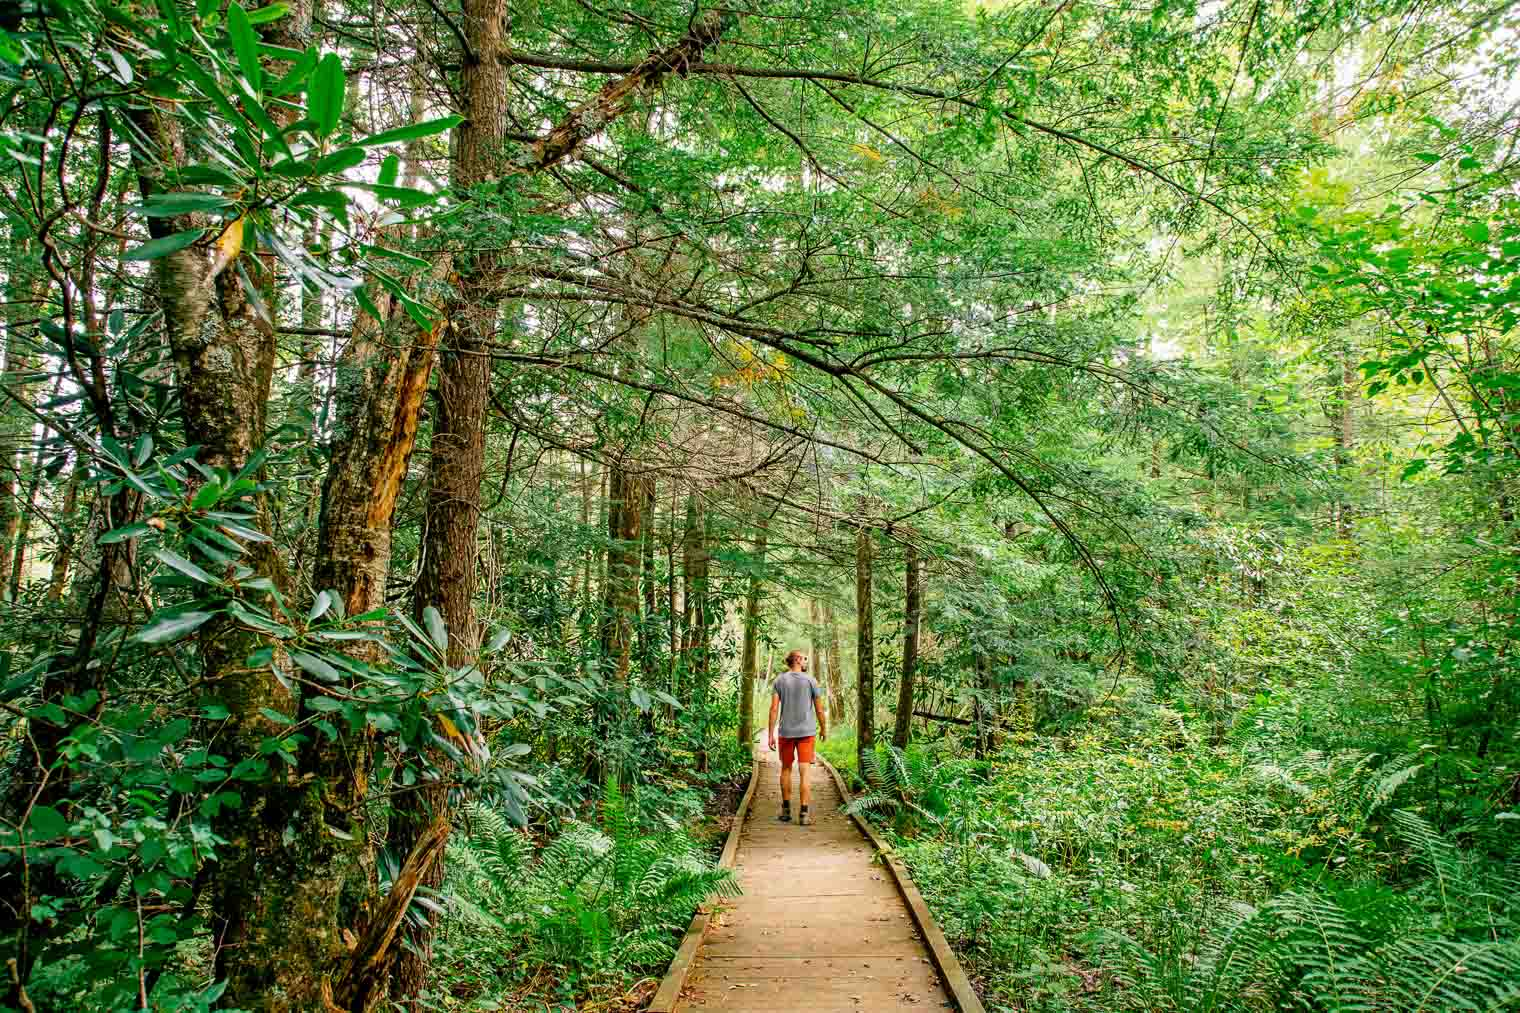 Michael walking on a wooden boardwalk through Cranberry Glades in West Virginia